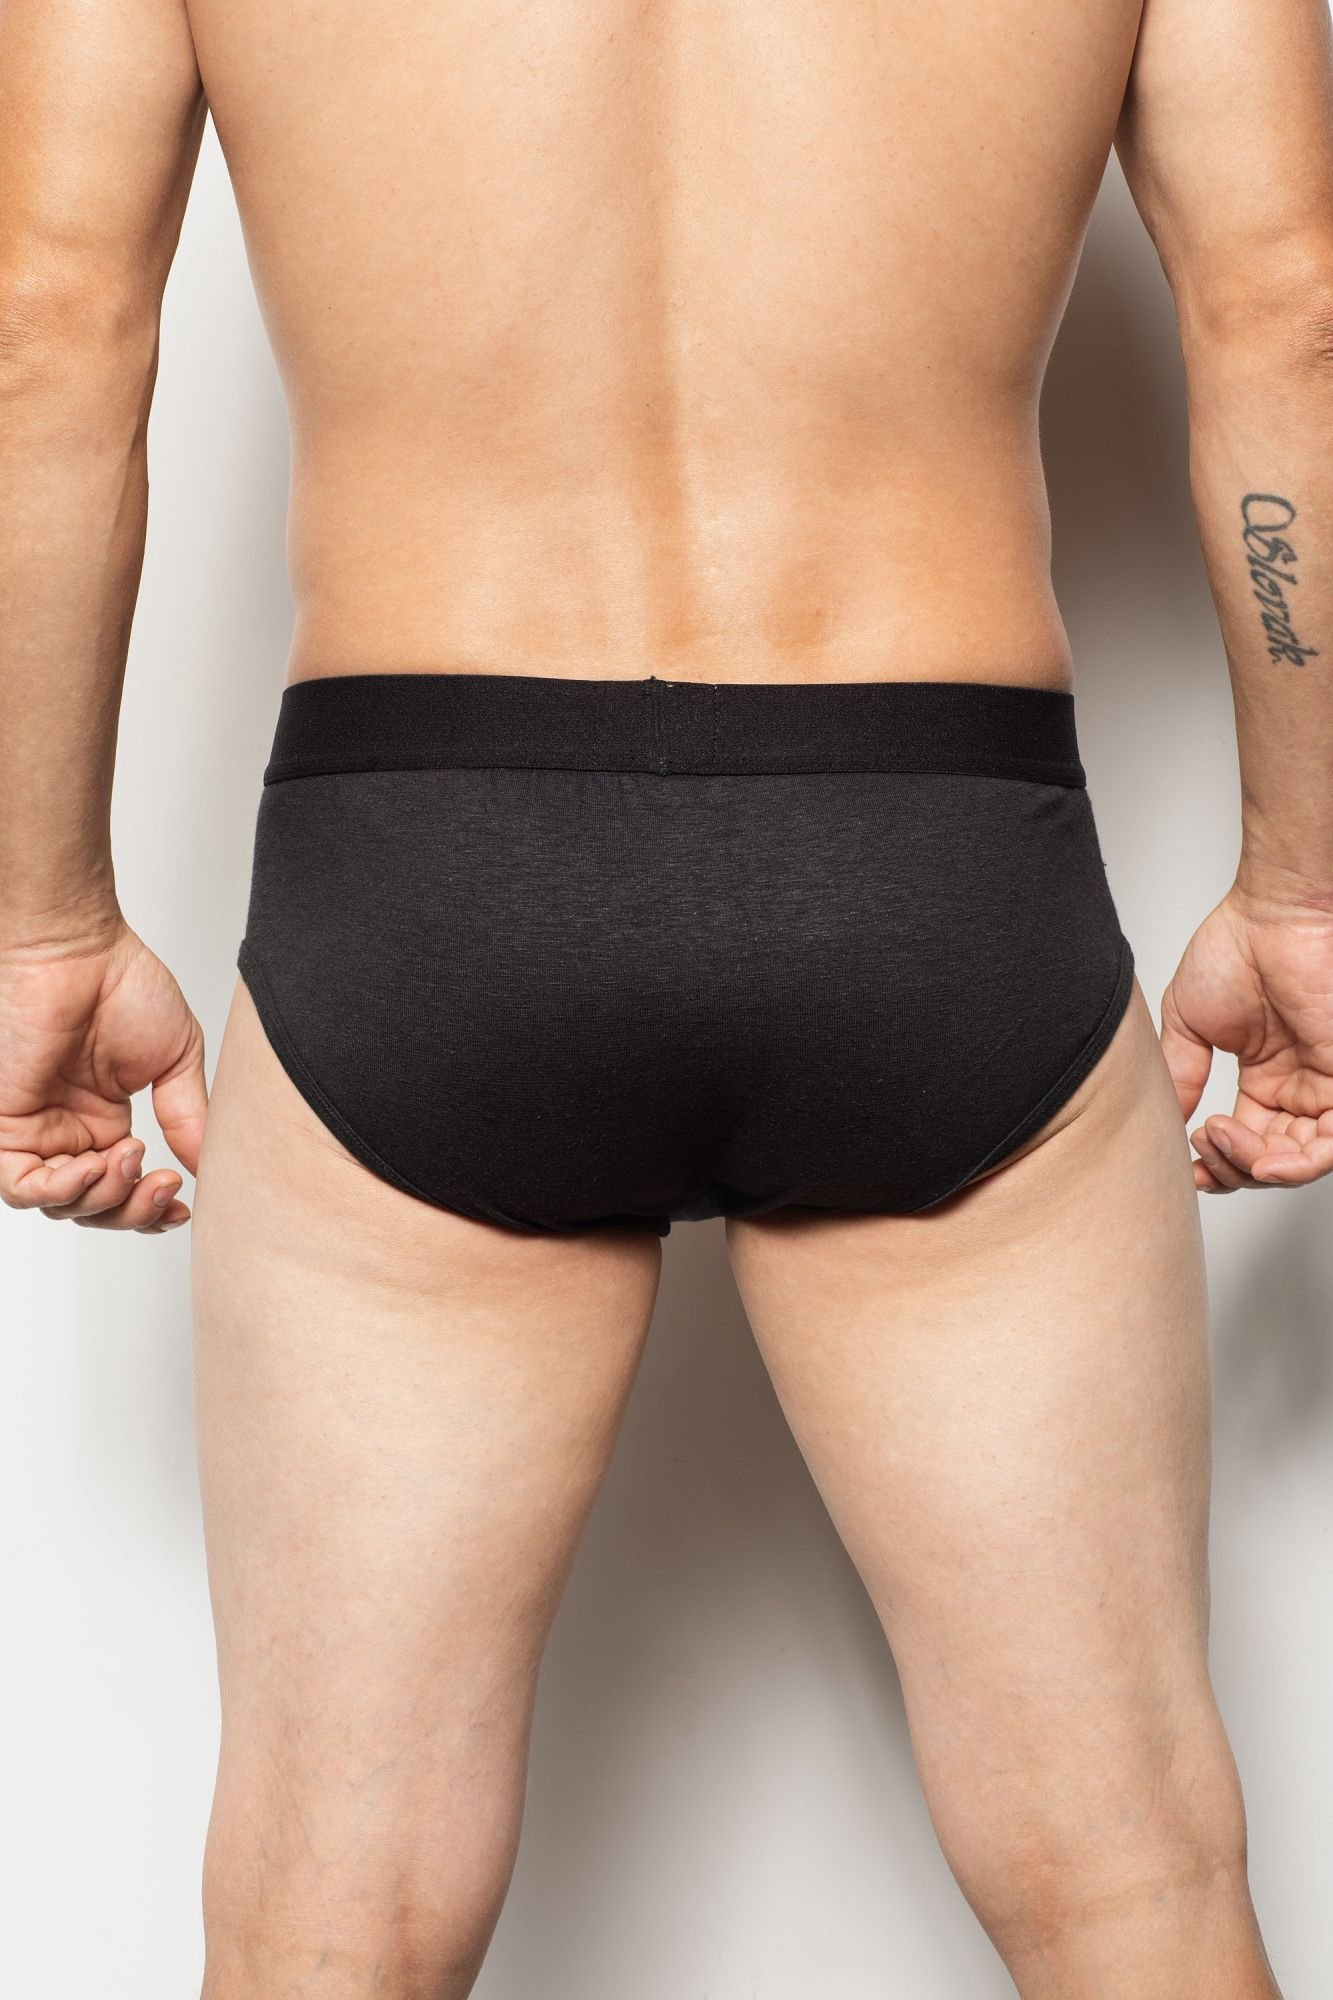 hemp briefs rear